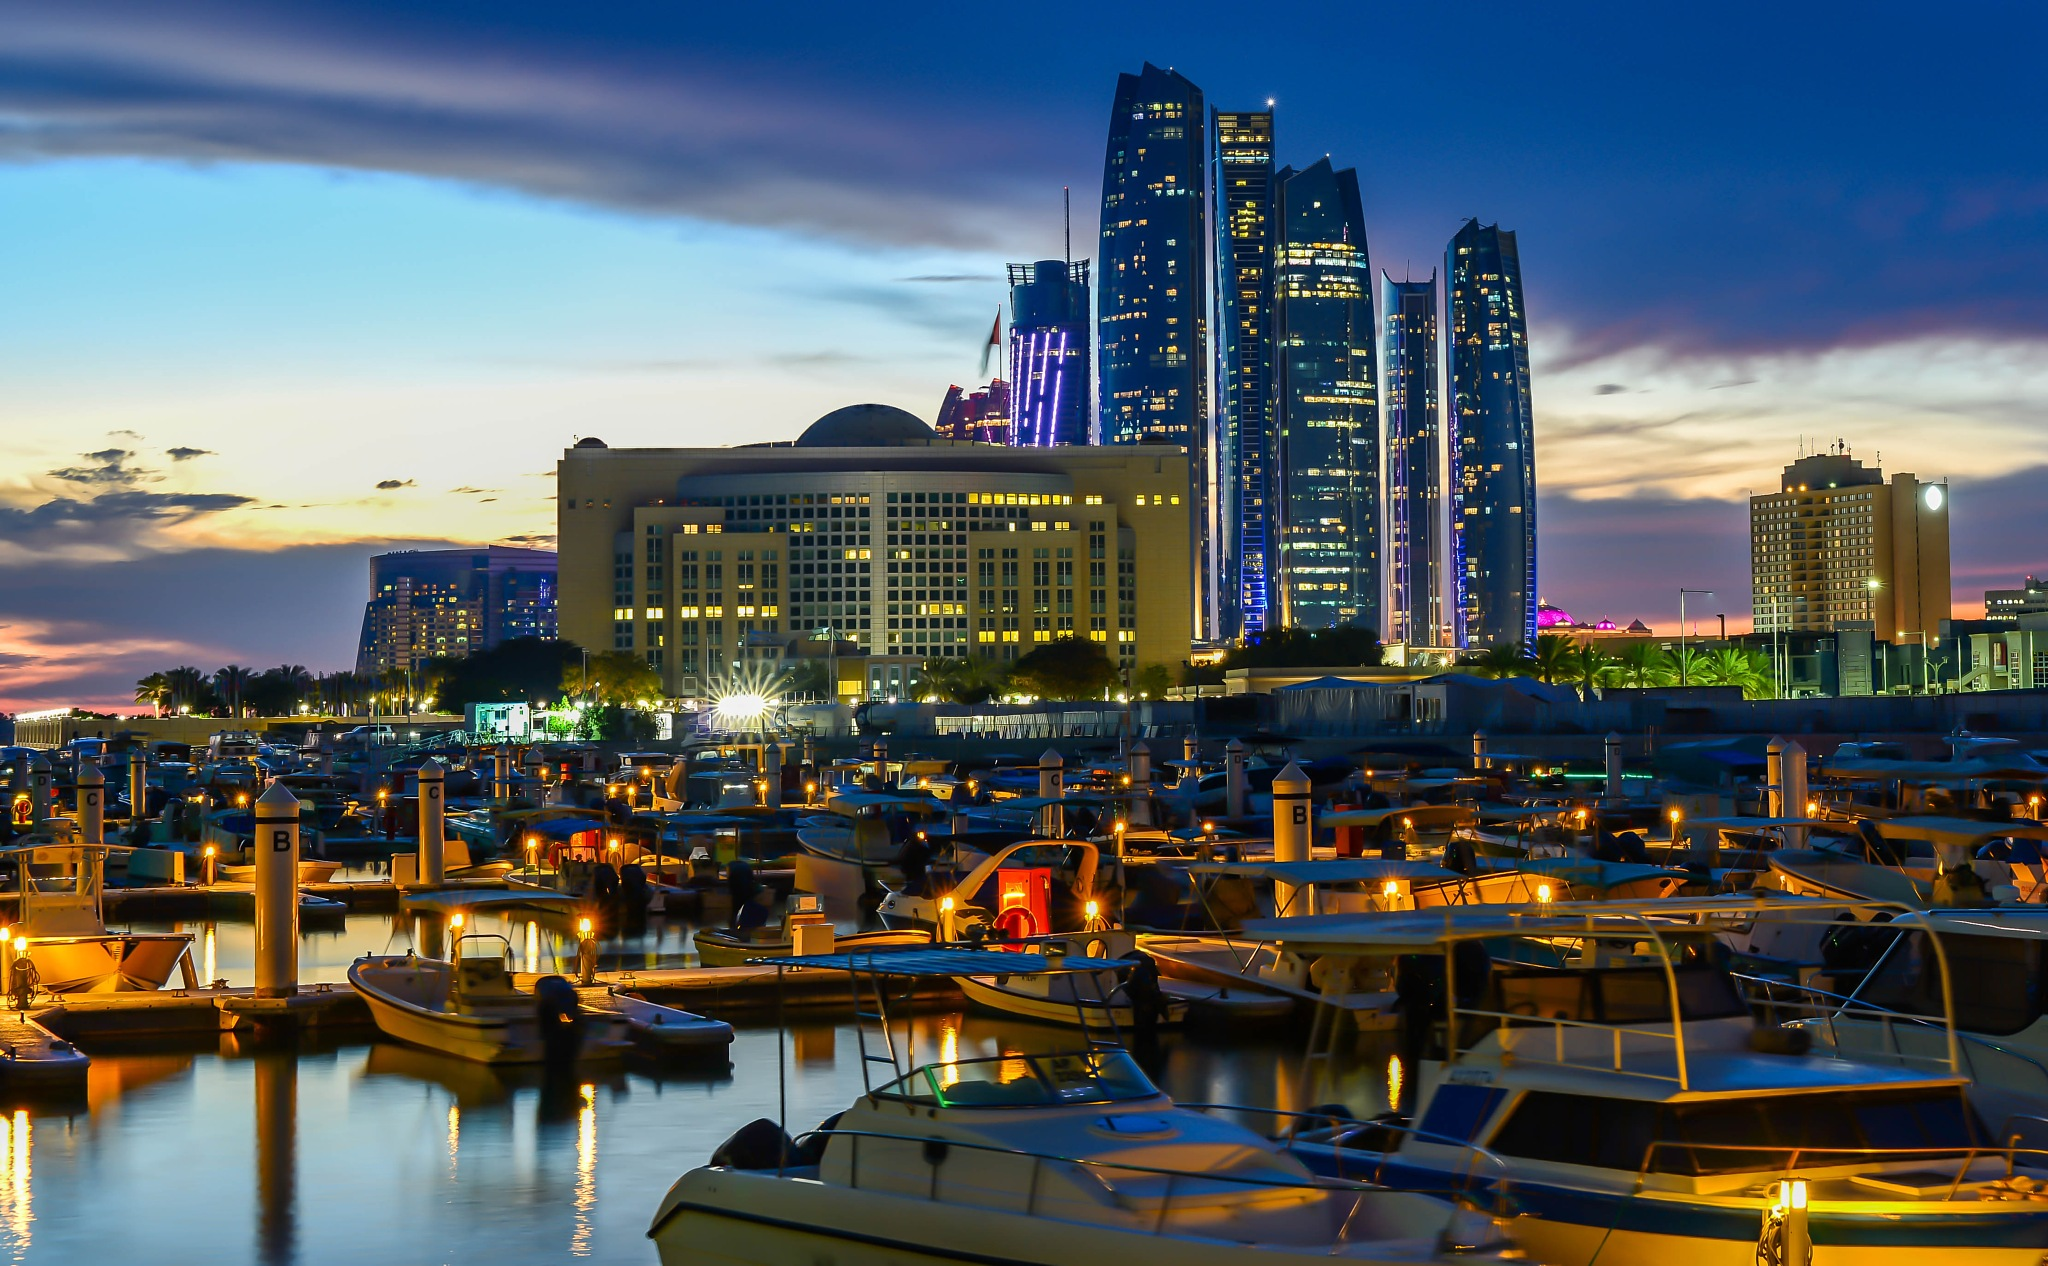 Ministry of Finance and Etihad Towers from Bateen Wharf by muhammad.nasser.963